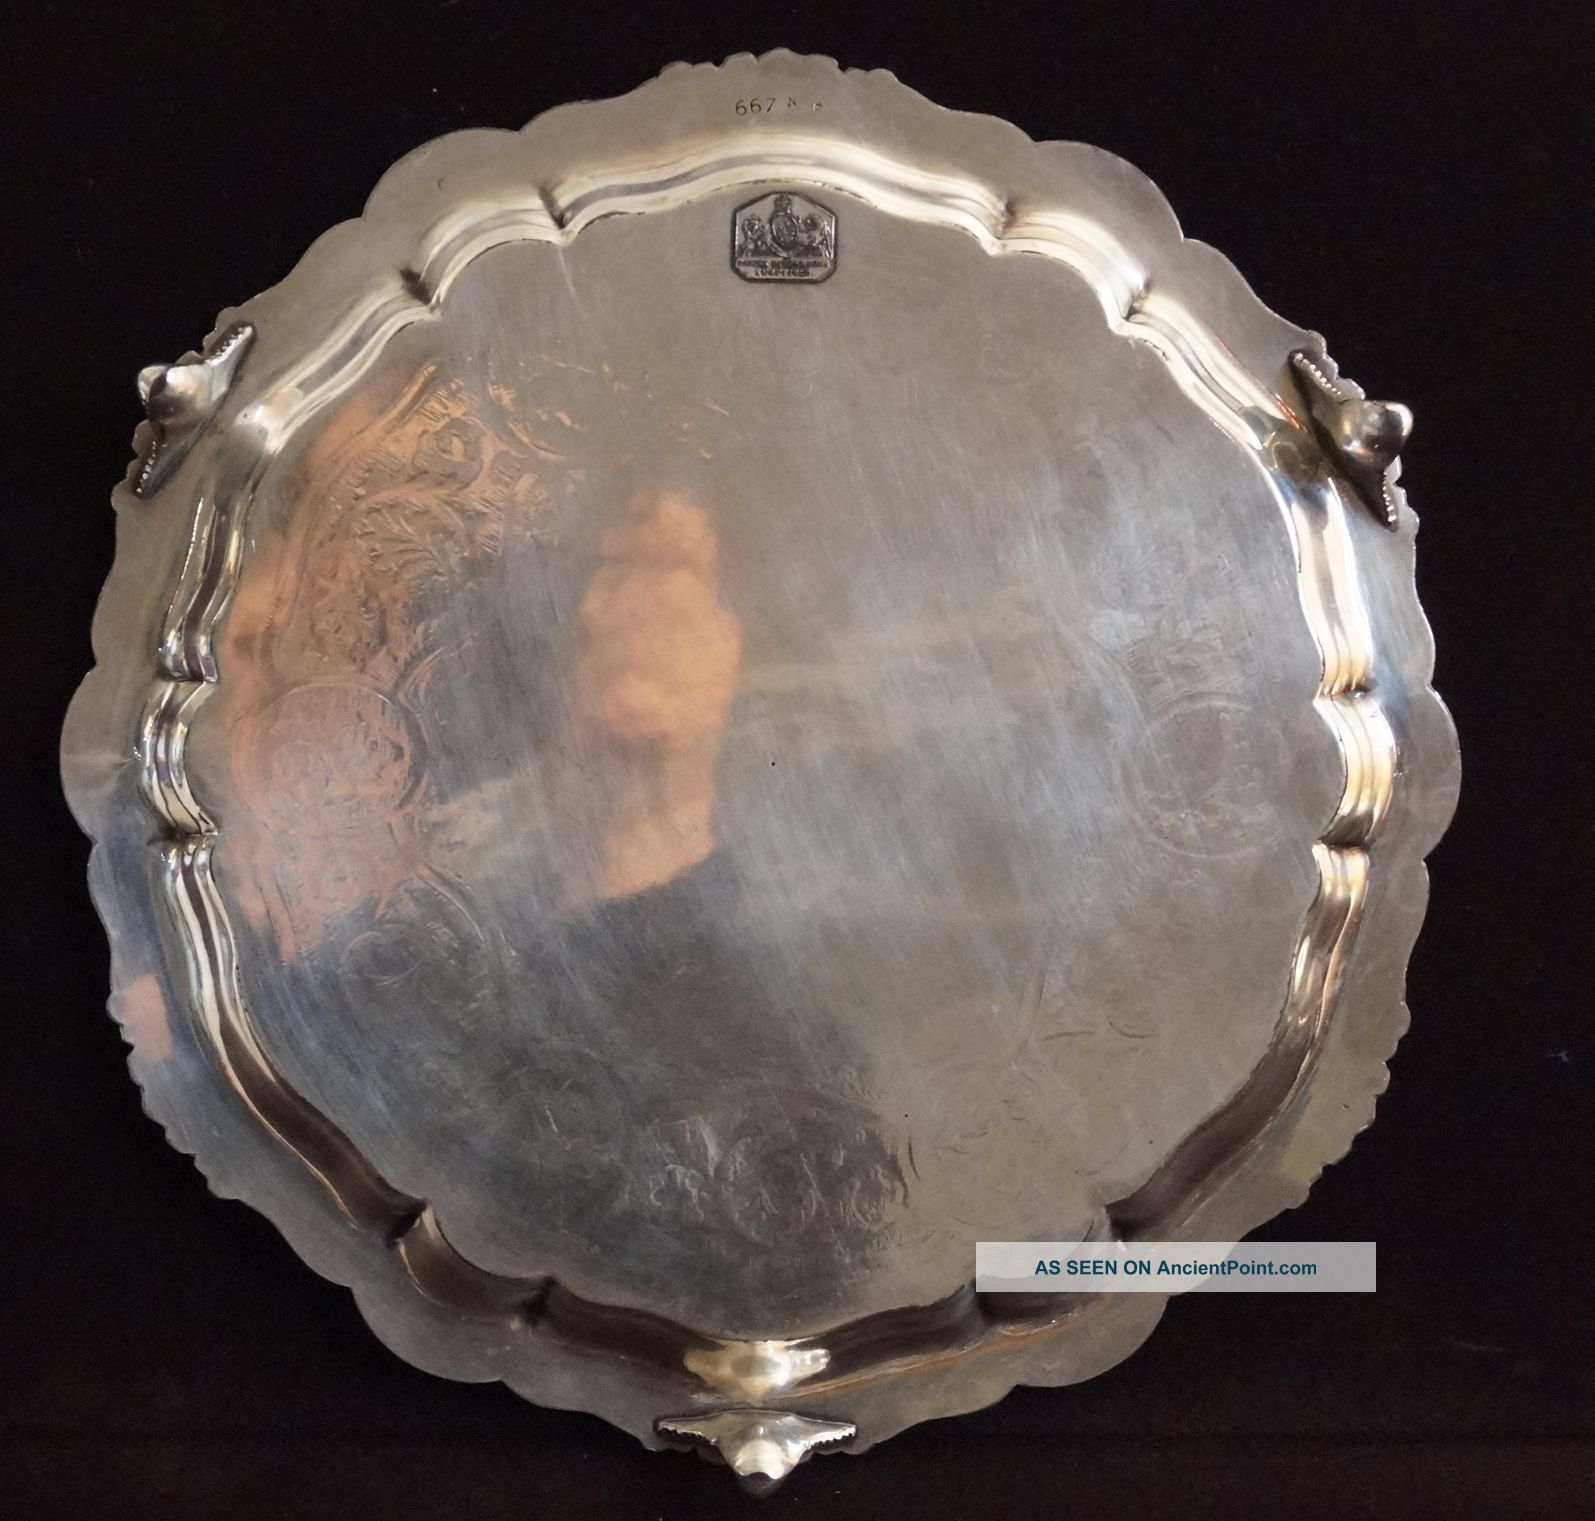 Gorgeous Antique James Dixon & Sons Sheffield Silver Plate Tray Salver Other Antique Silverplate photo